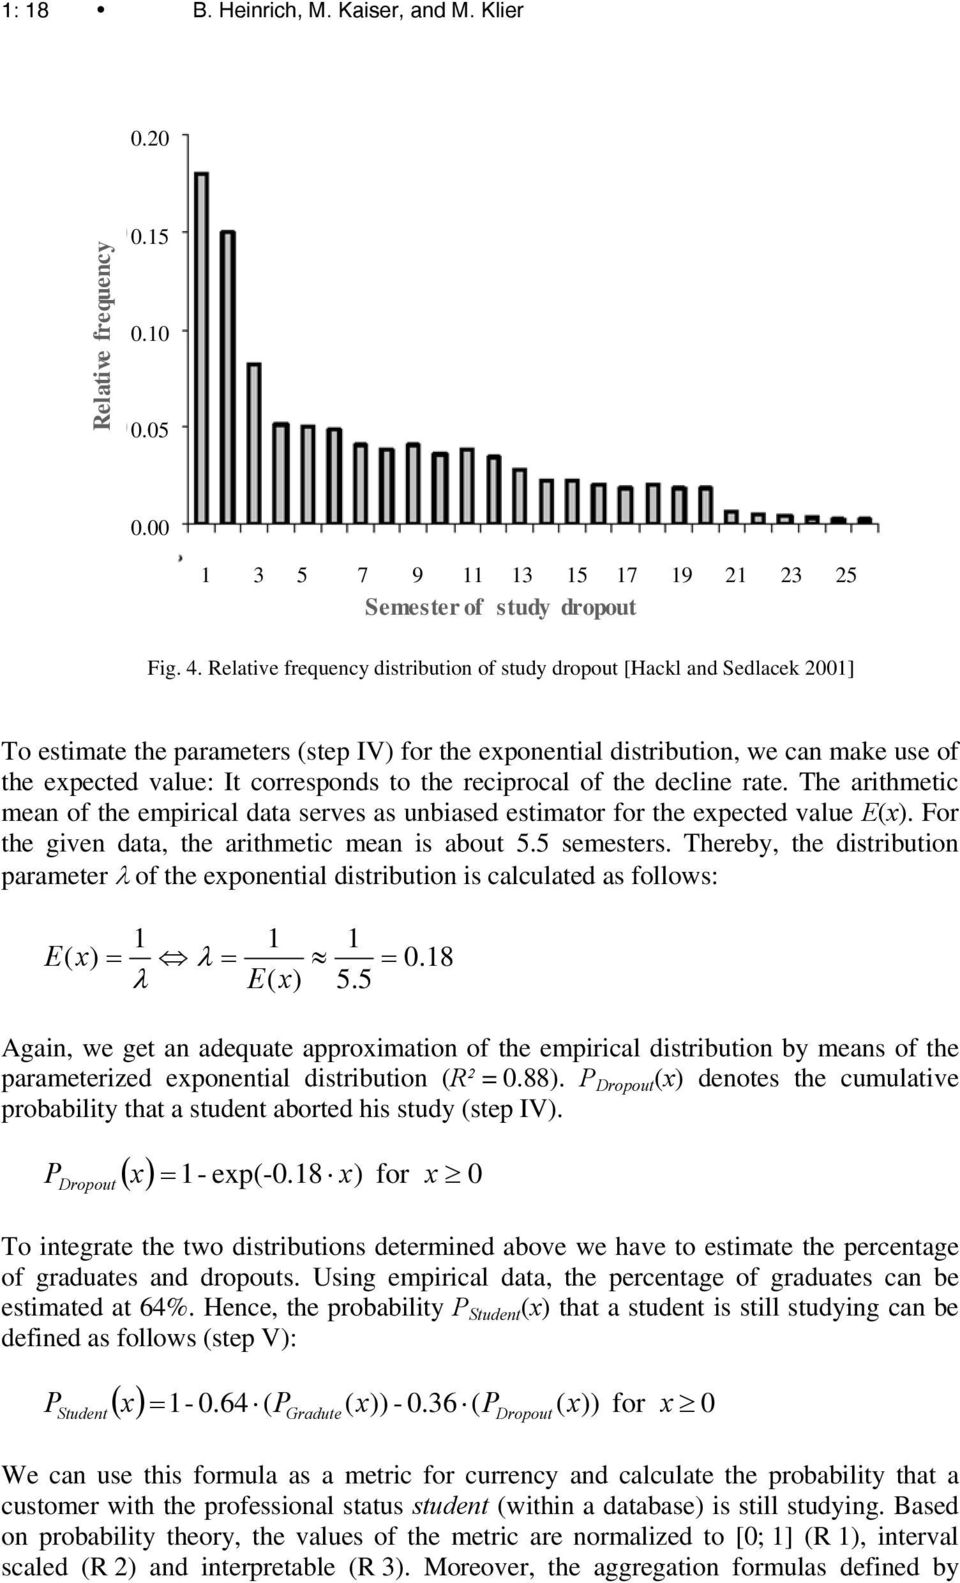 to the reciprocal of the decline rate. The arithmetic mean of the empirical data serves as unbiased estimator for the expected value E(x). For the given data, the arithmetic mean is about 5.